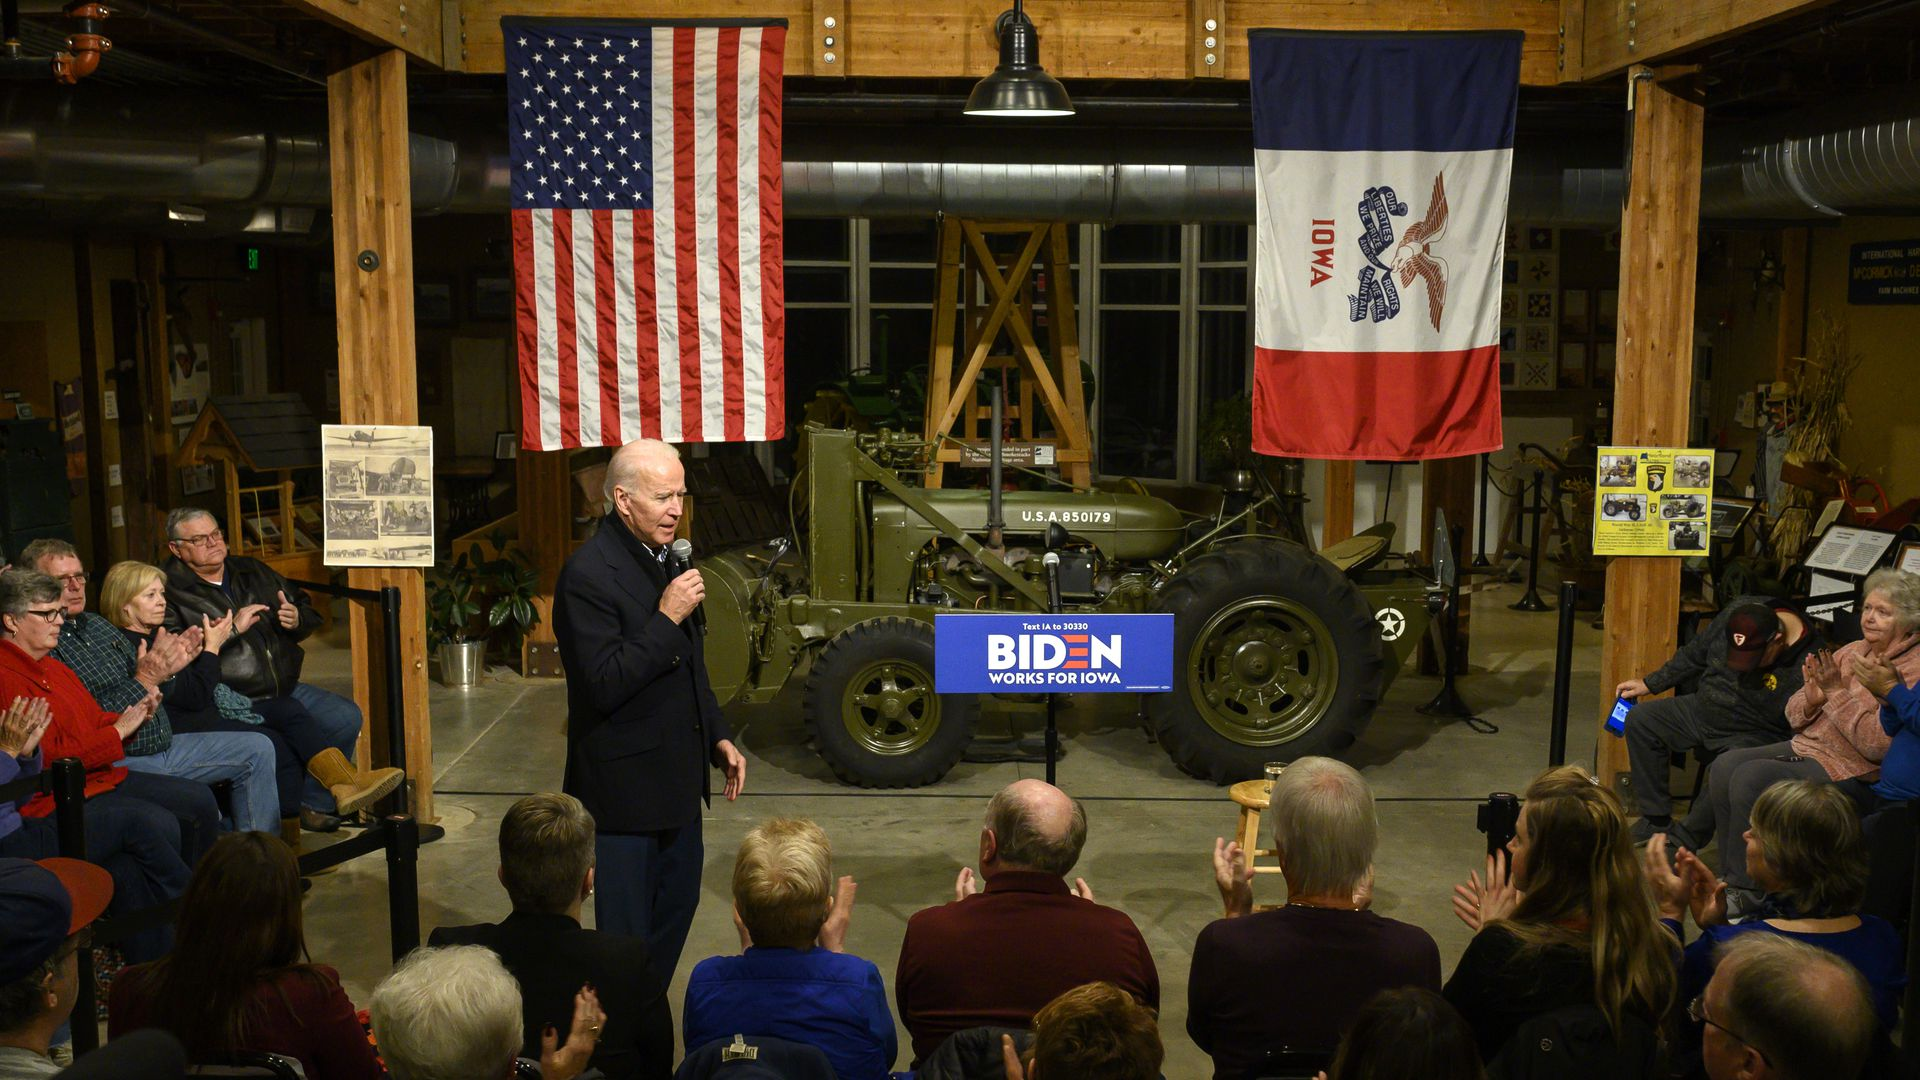 Biden addresses a crowd on a stage with an American flag and Iowa flag in the background